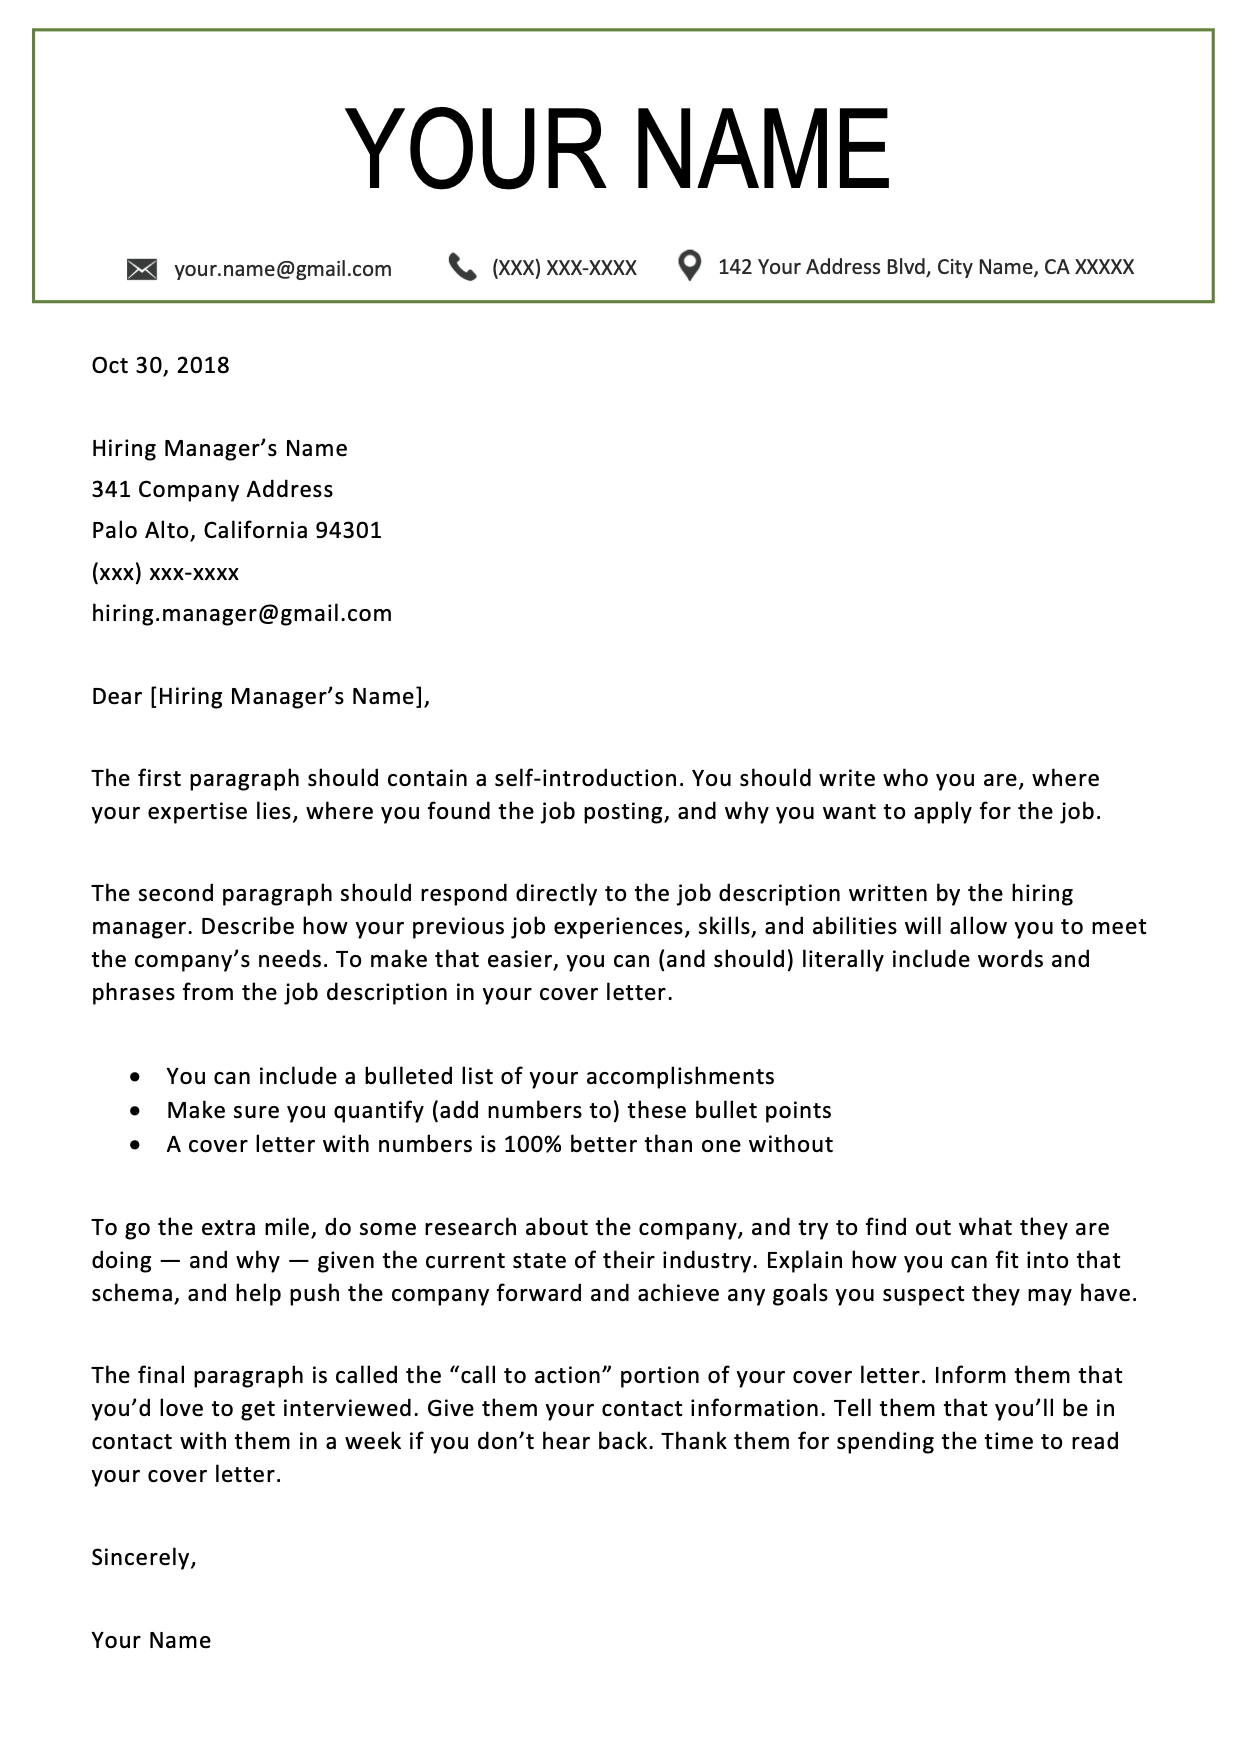 Westminster Green Resume RG Cover letter template free